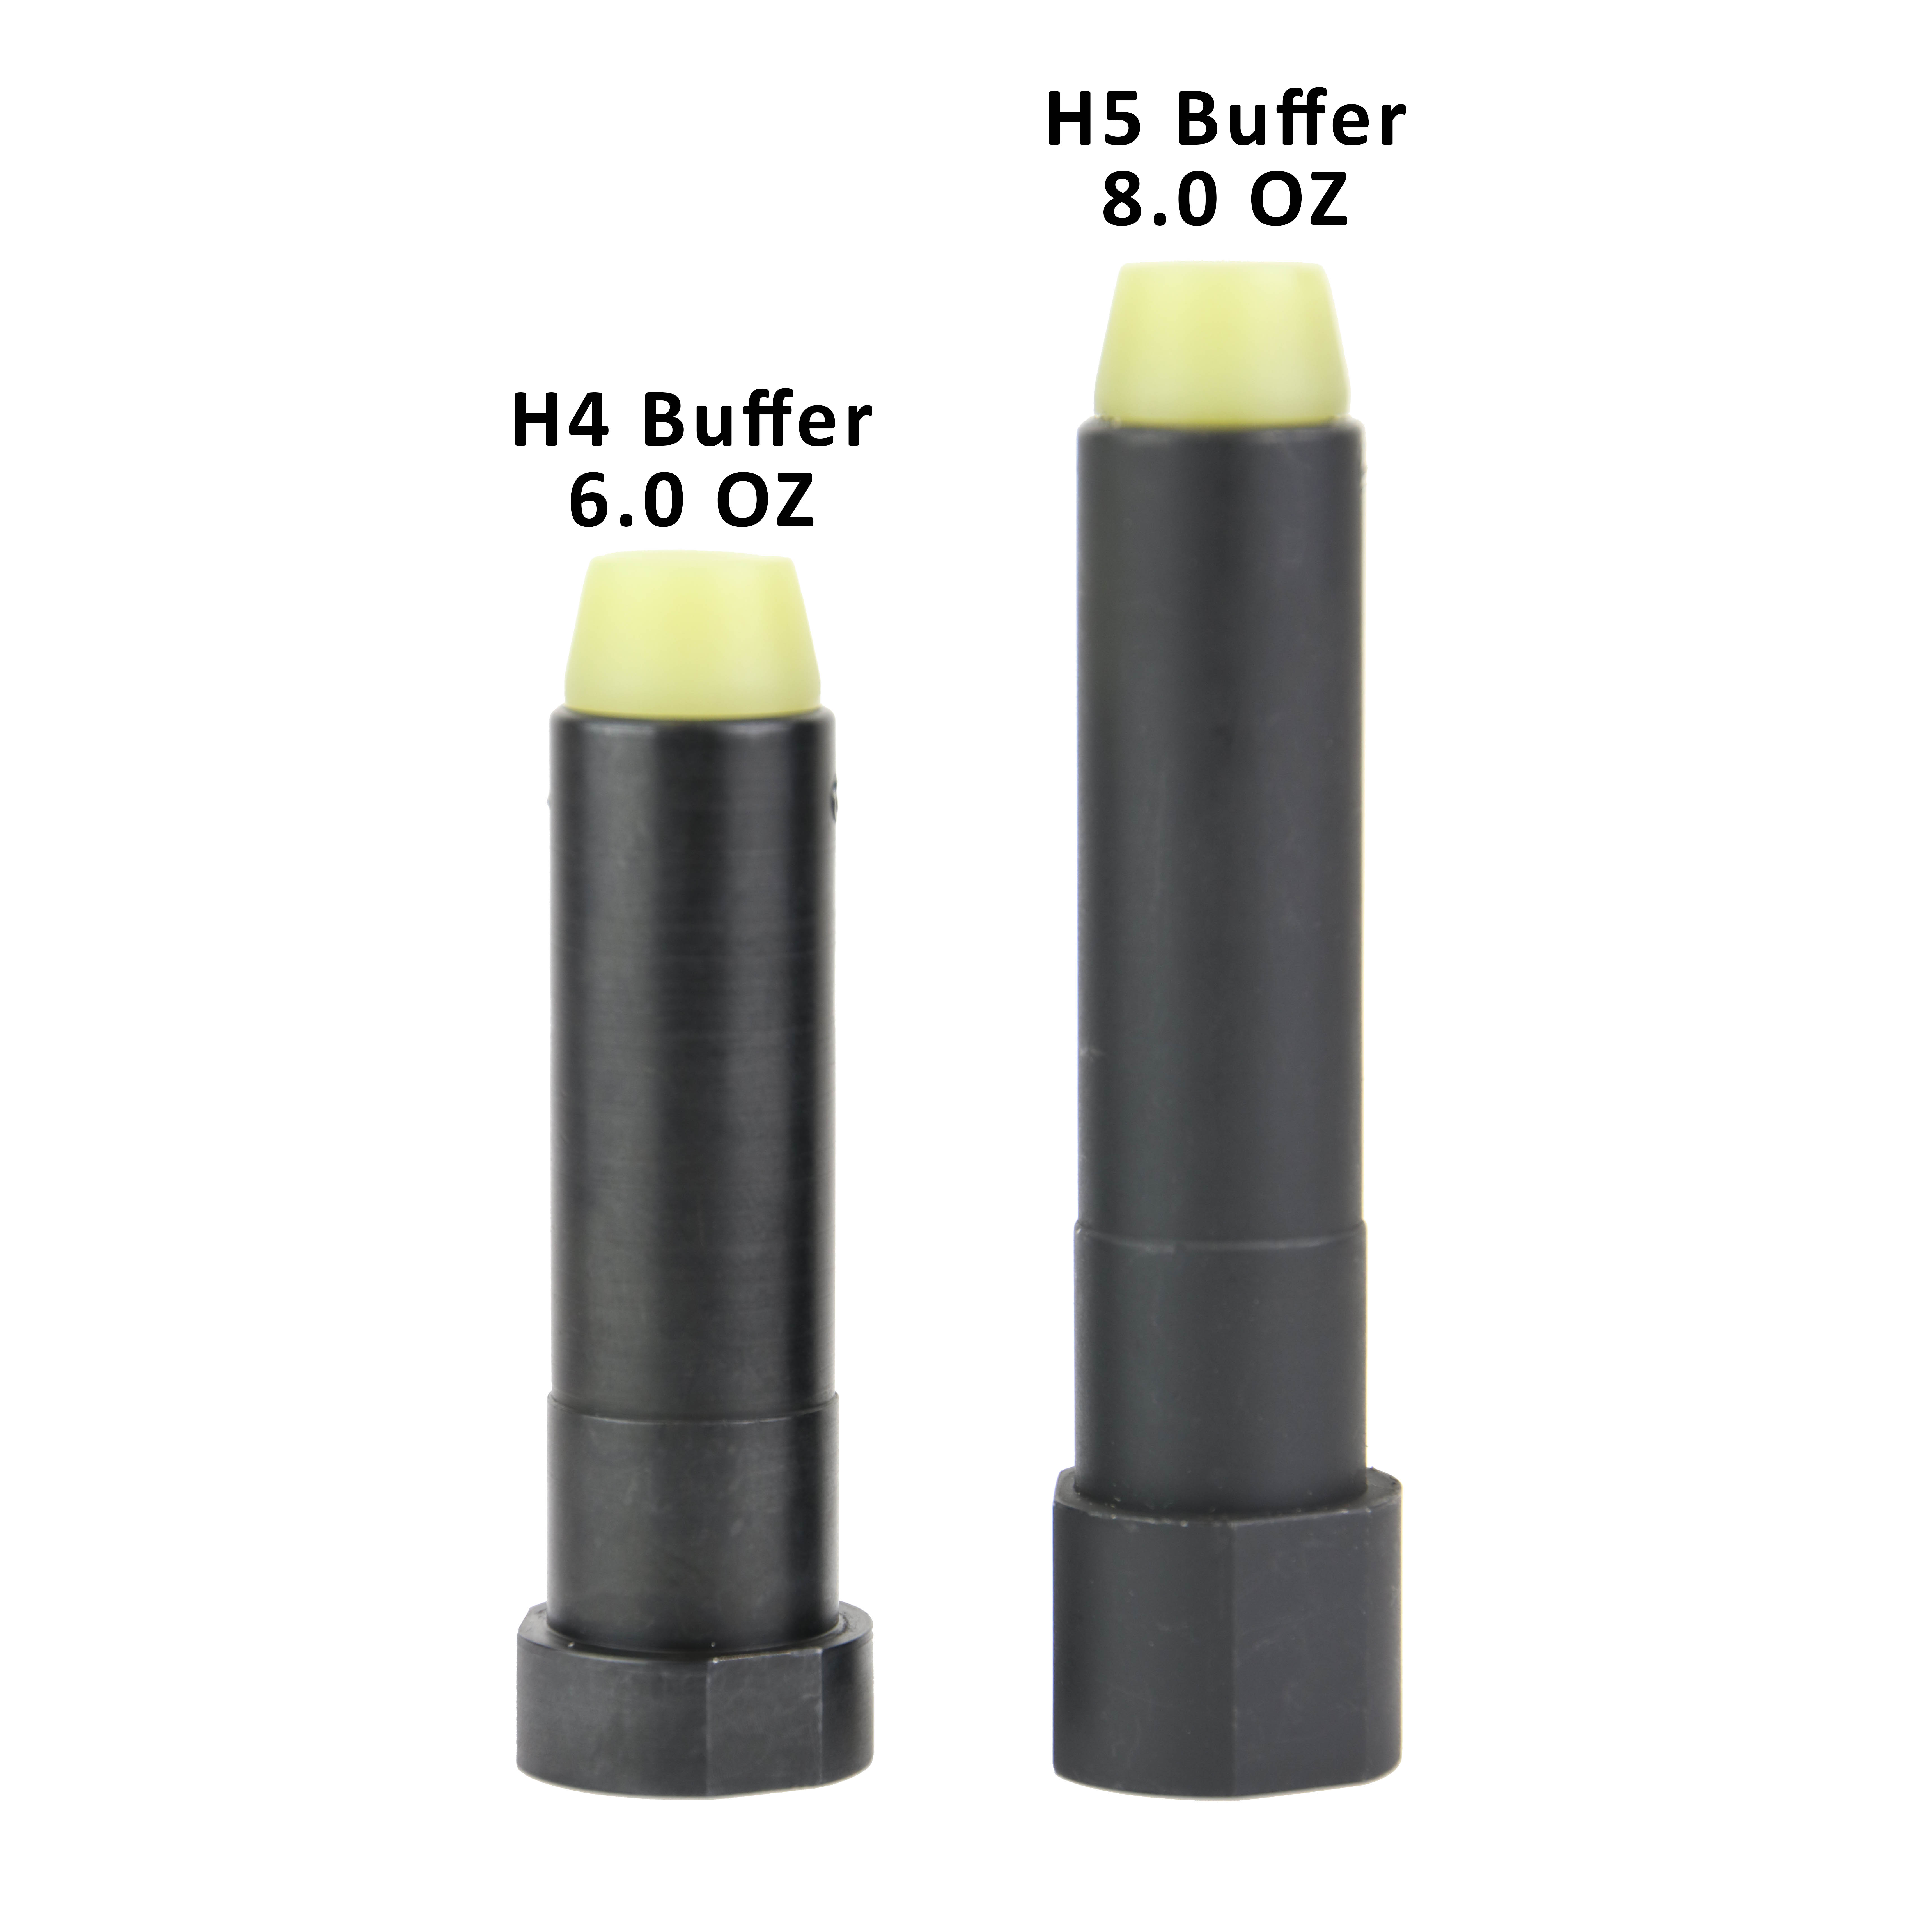 H5 Heavy Buffer 8.0oz AR15 AR9